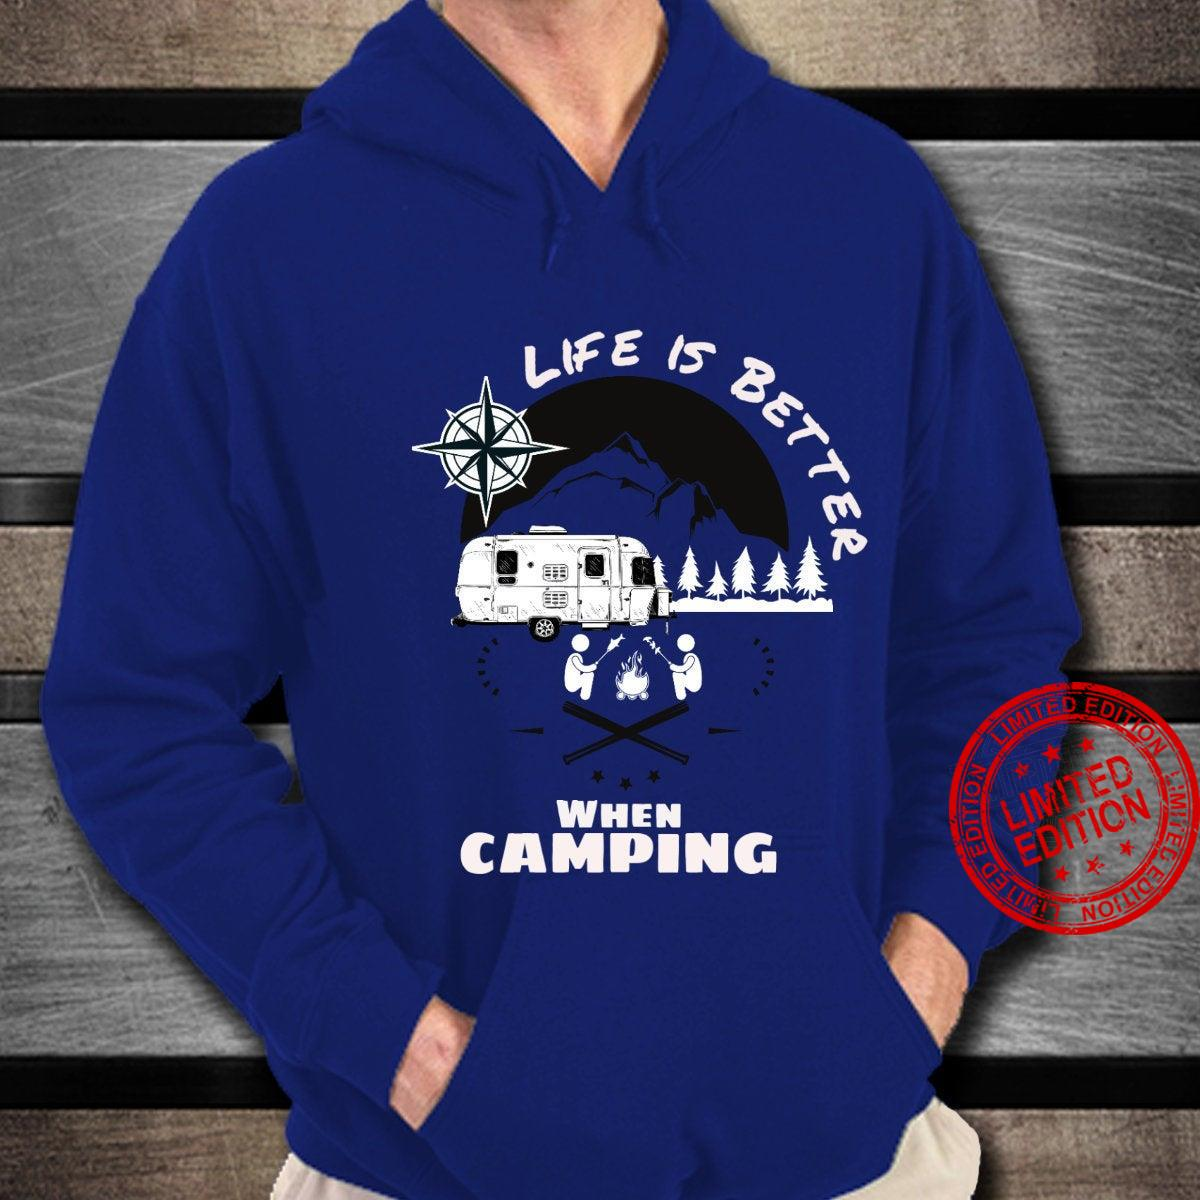 life is better when camping,perfect gift for camping lover's shirt